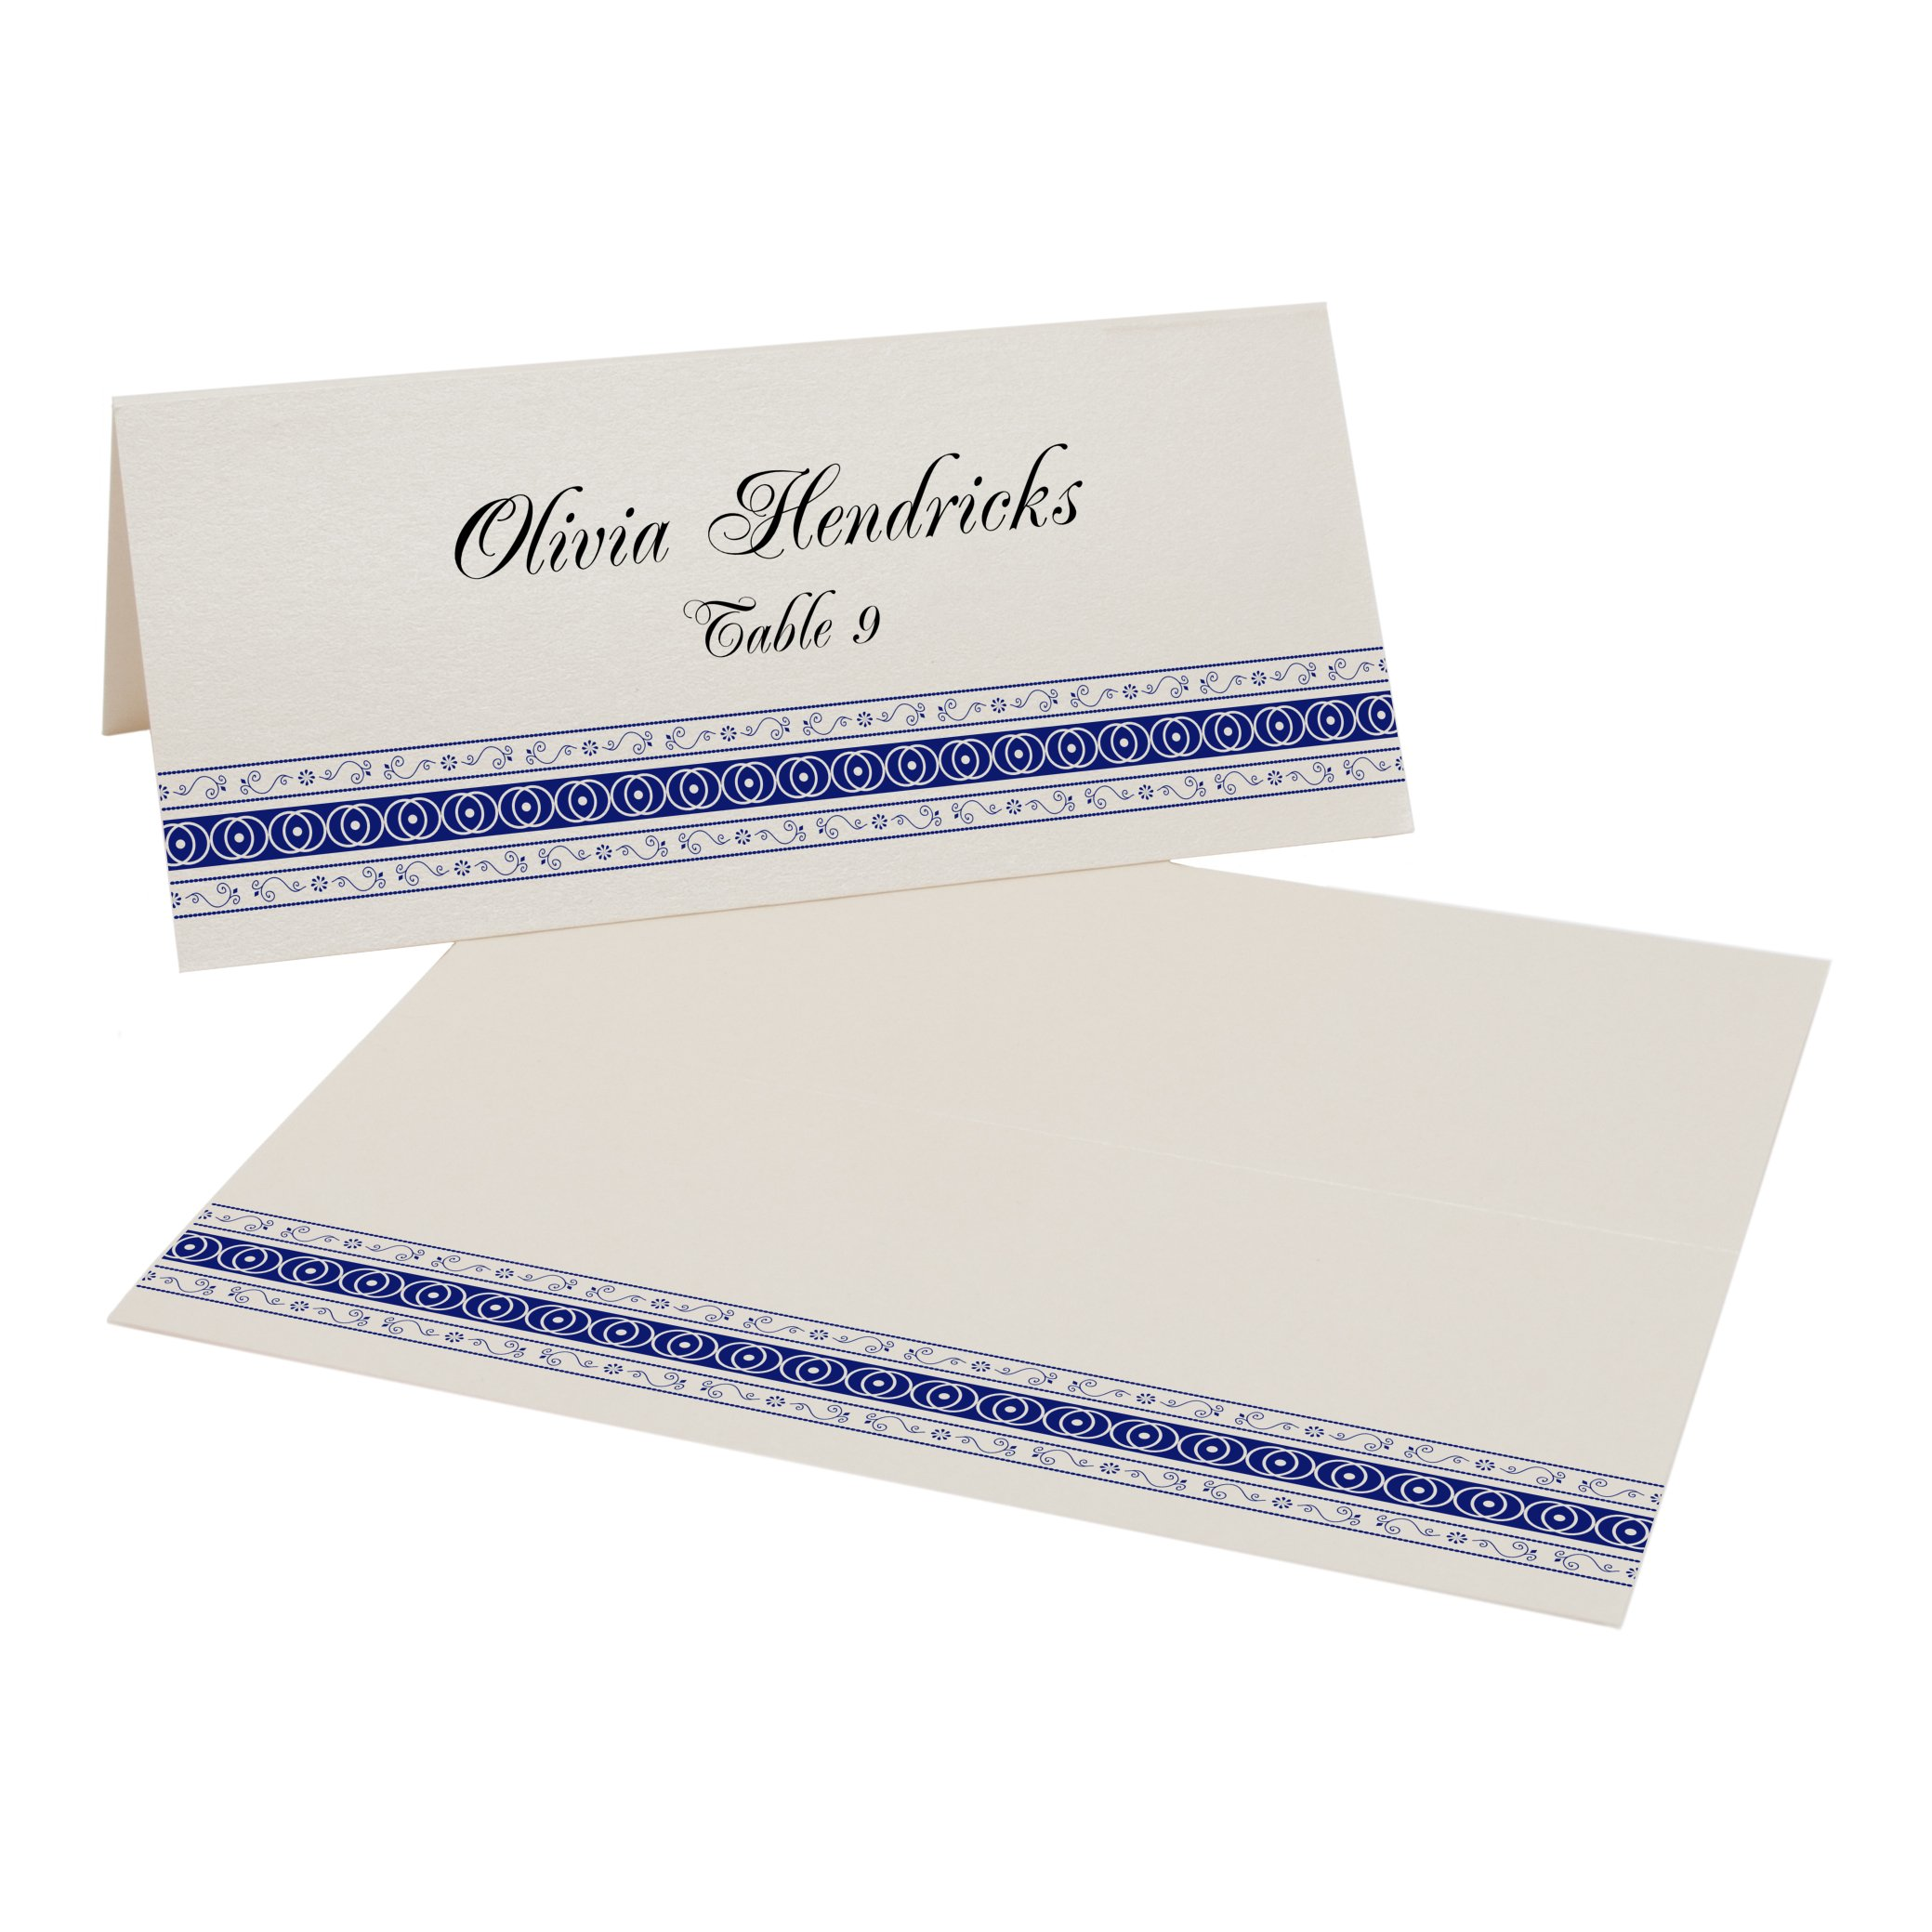 Mumbai Inspired Border Place Cards, Champagne, Navy, Set of 375 by Documents and Designs